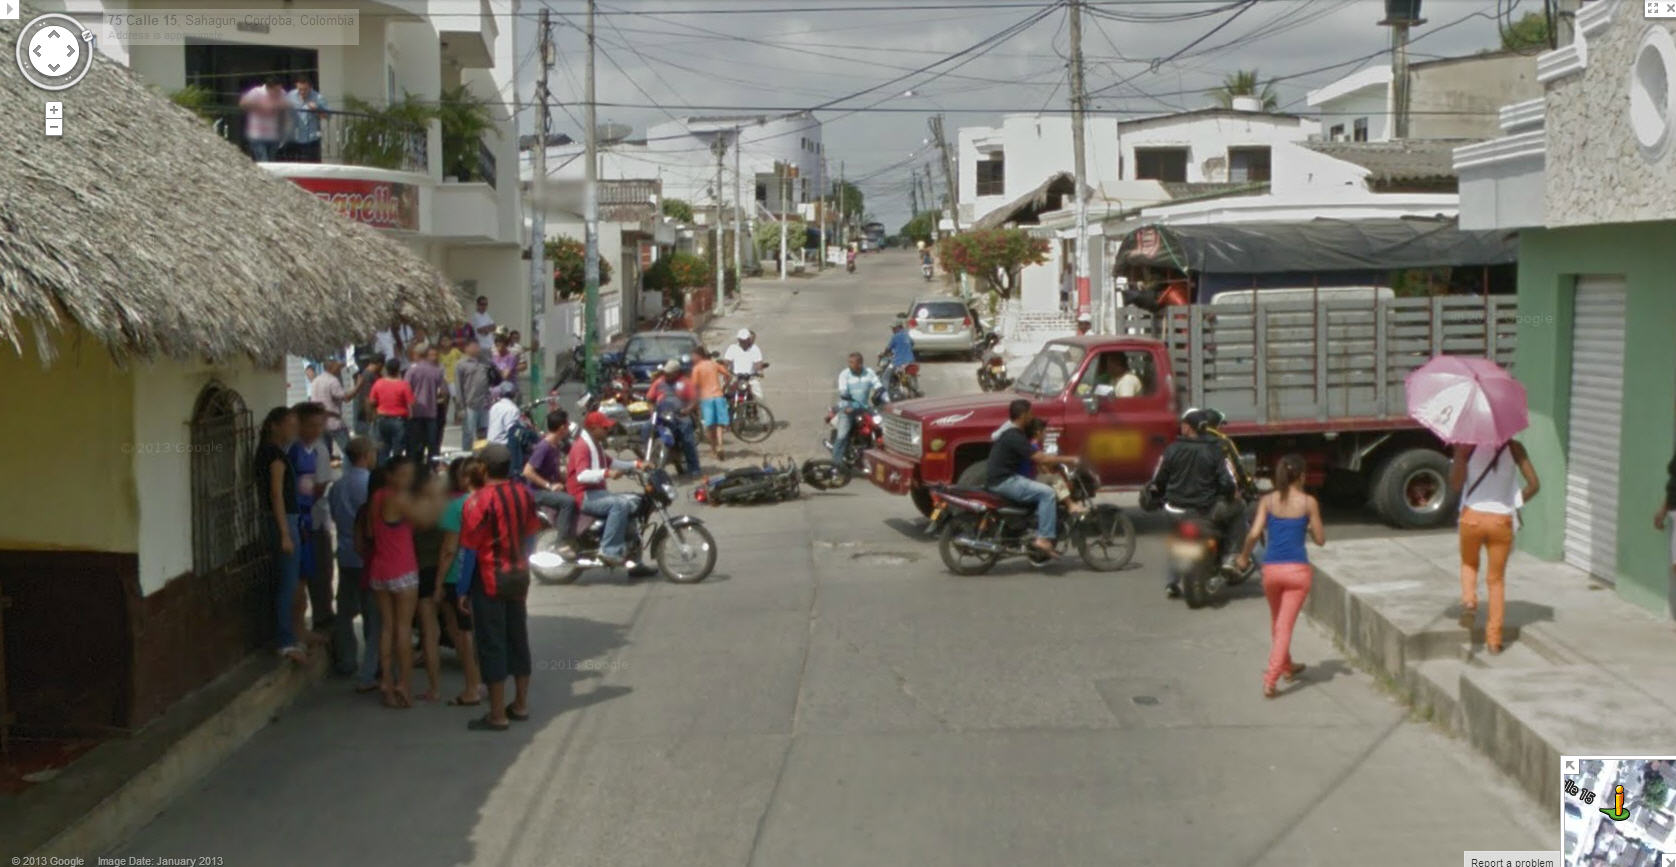 Another Motorcycle Accident in Colombia